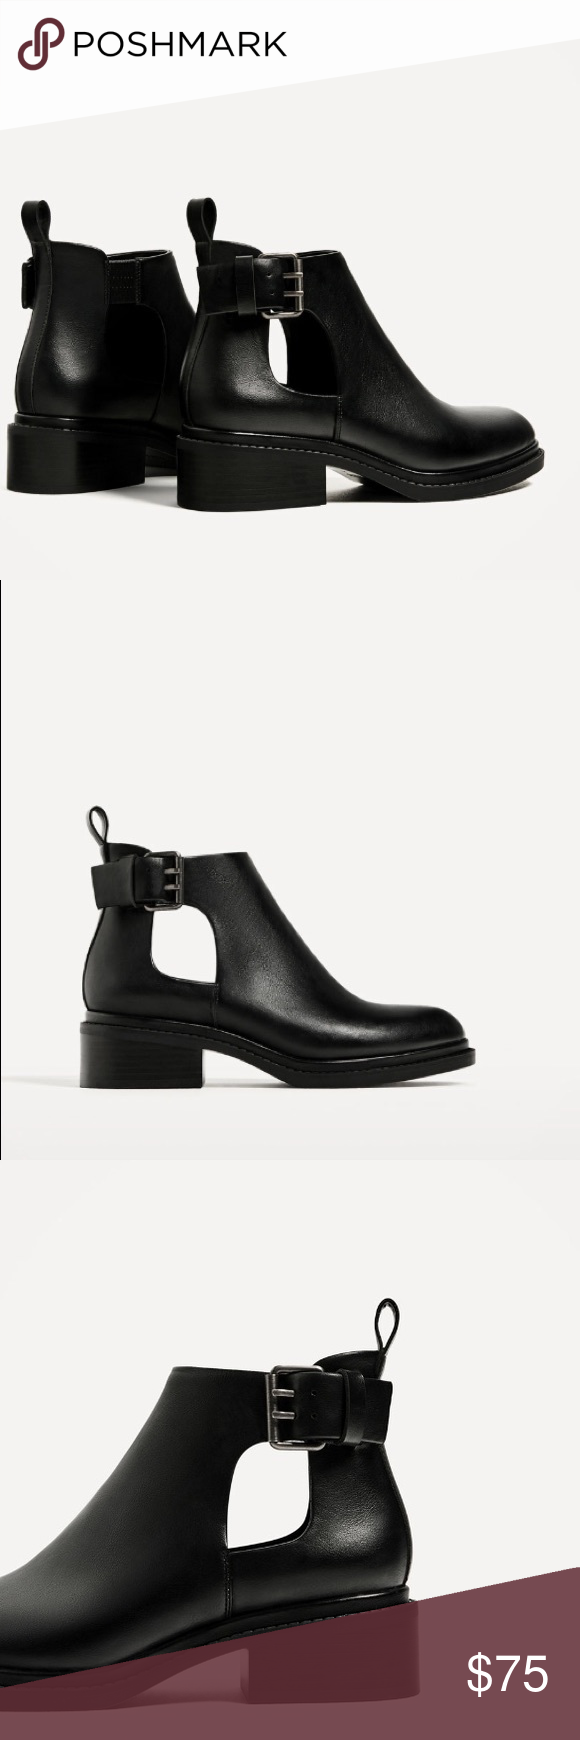 70642902592cd ZARA OPEN CUT ANKLE BOOTS W/ BUCKLE BRAND NEW ZARA OPEN CUT ANKLE BOOTS W/ BUCKLE  BRAND NEW Zara Shoes Ankle Boots & Booties